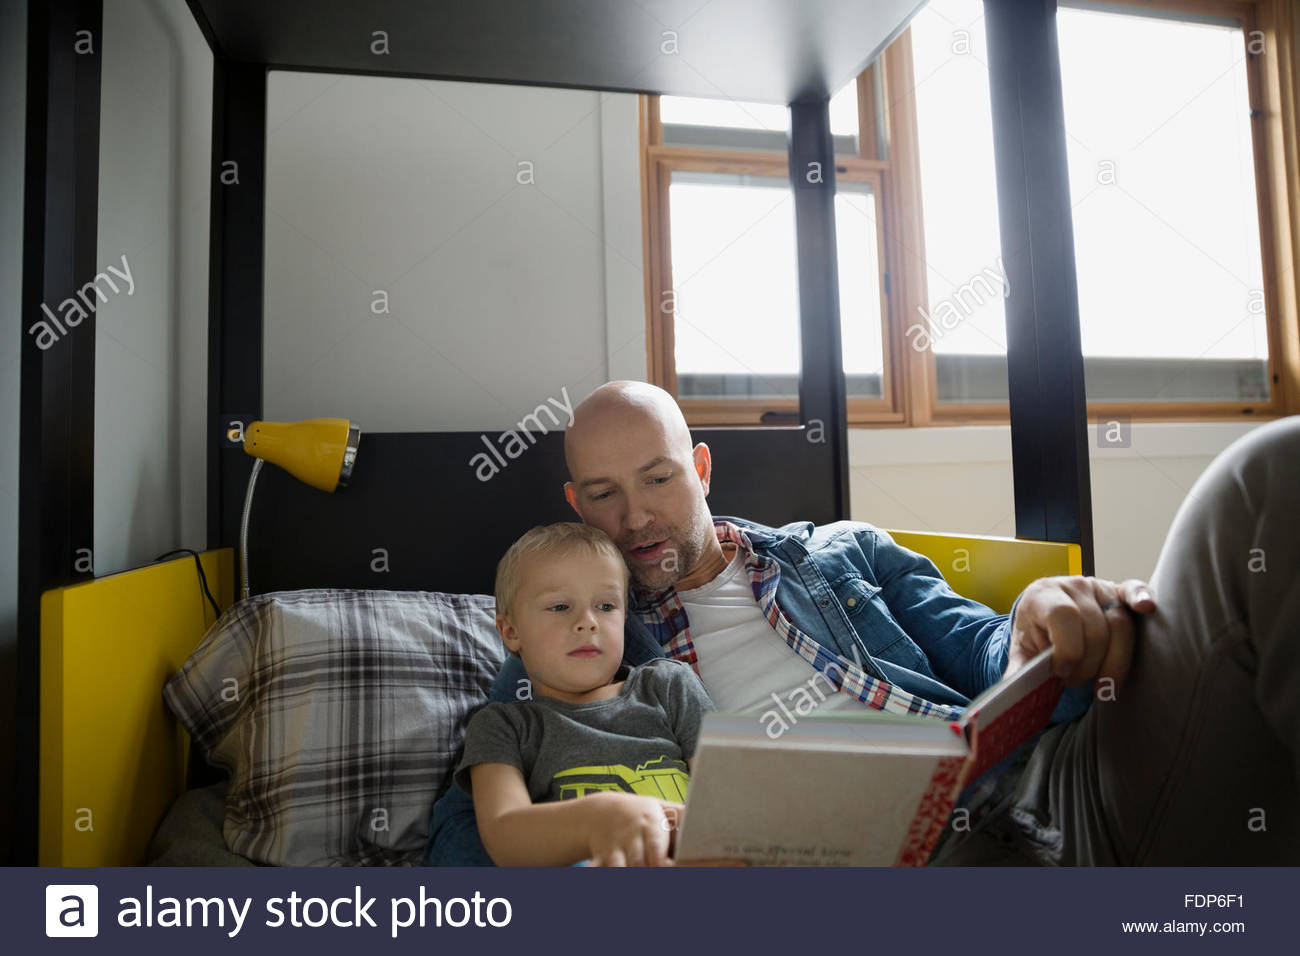 Father and son reading book on bed - Stock Image